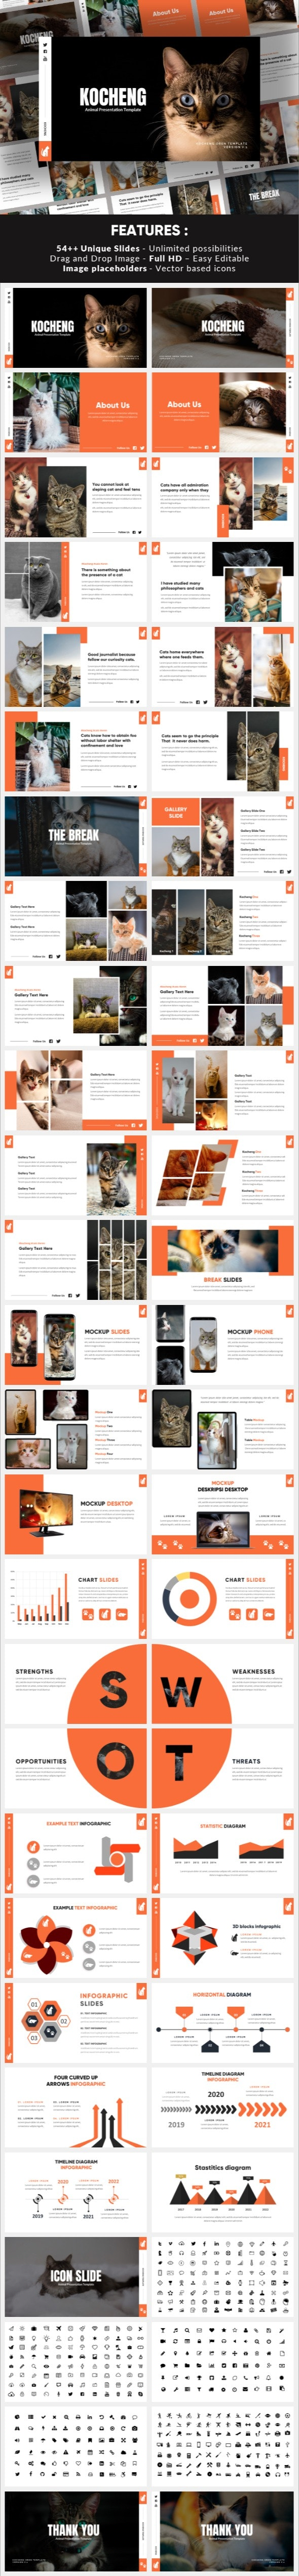 Kocheng - Cat Animal Powerpoint Template - Miscellaneous PowerPoint Templates